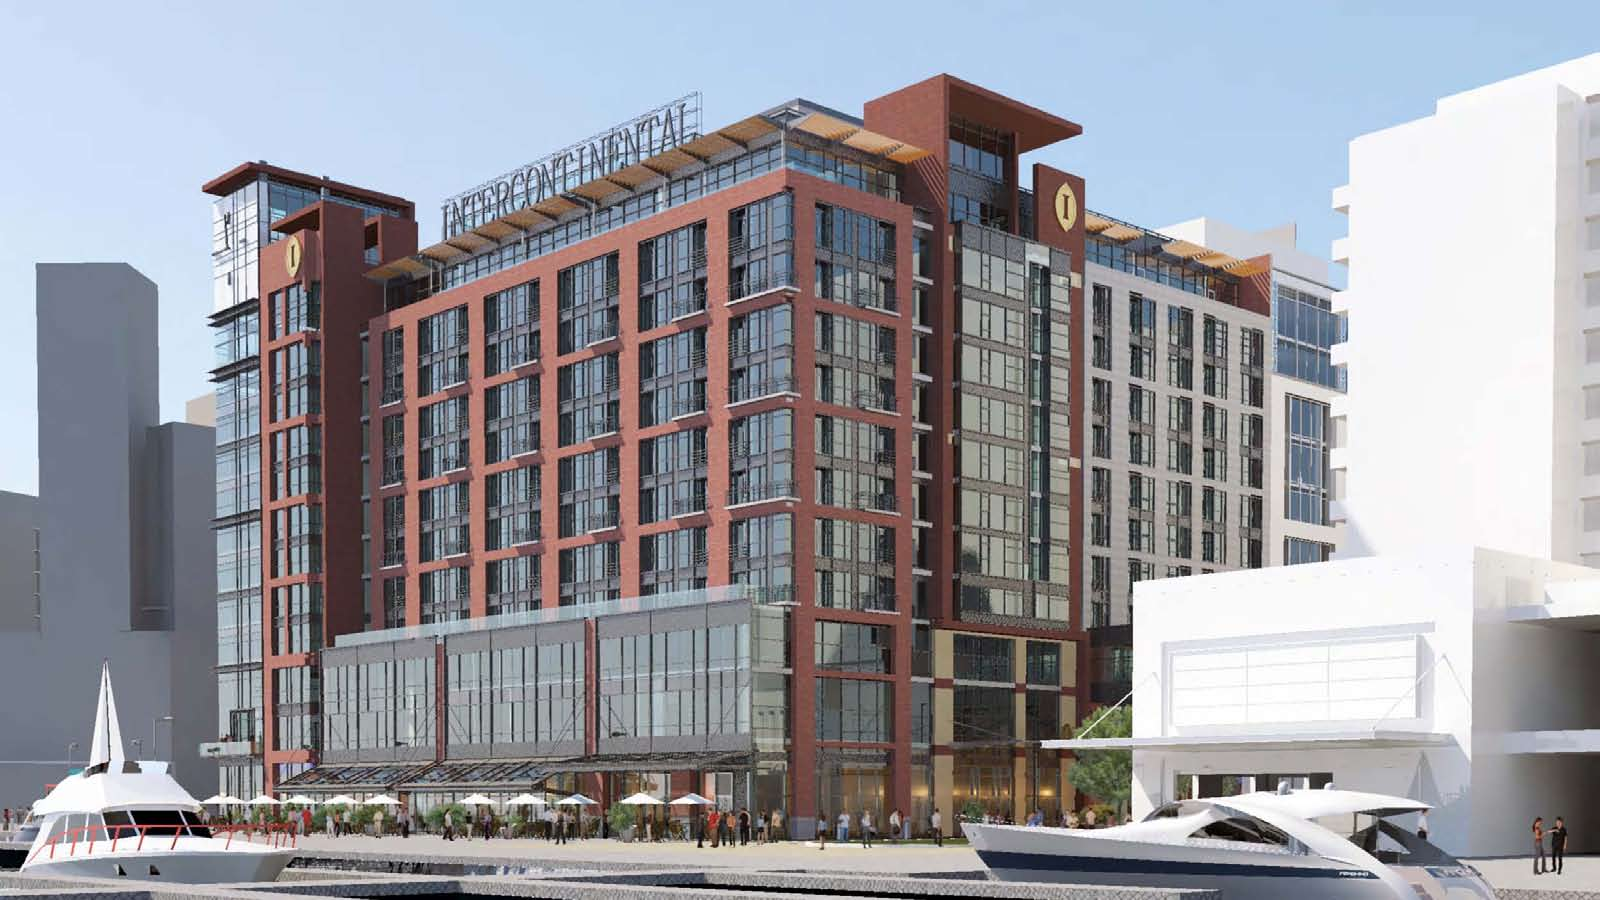 Dcmud The Urban Real Estate Digest Of Washington Dc Wharf S Resort In City Anchor Hotel Eases Critics Inches Forward